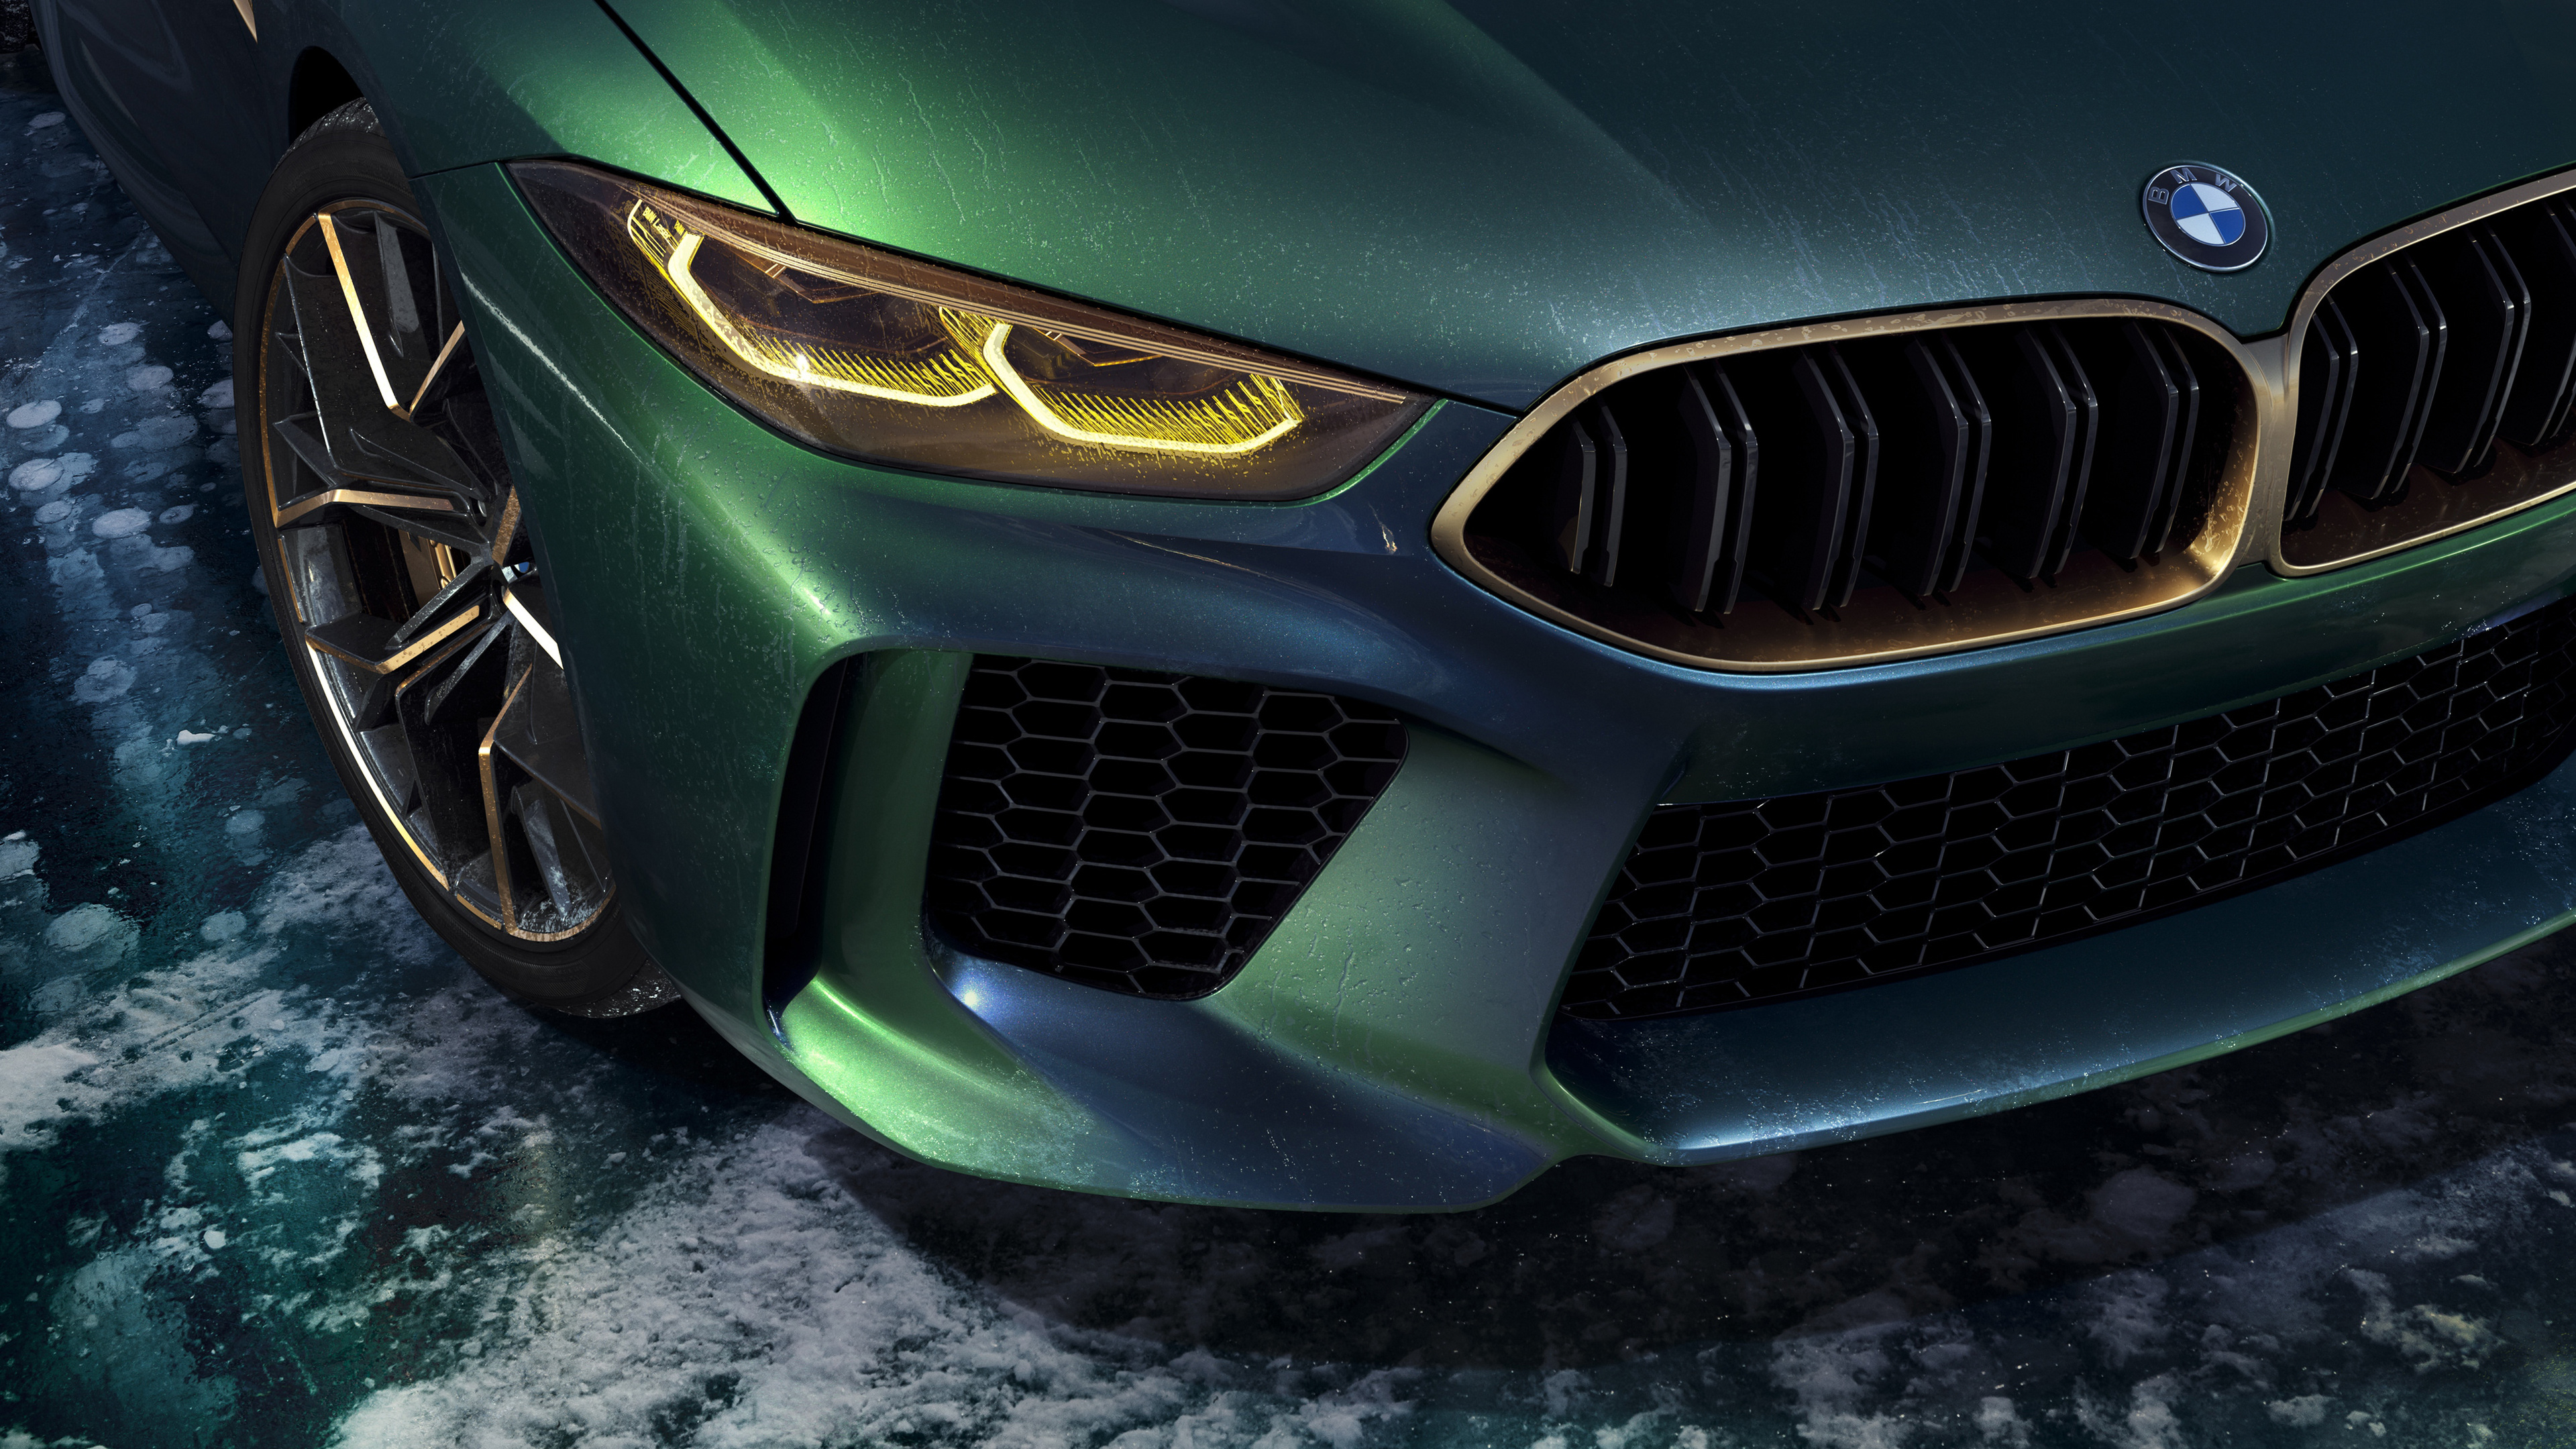 bmw concept m8 gran coupe headlights 1539110232 - Bmw Concept M8 Gran Coupe Headlights - hd-wallpapers, concept cars wallpapers, cars wallpapers, bmw wallpapers, bmw concept m8 gran coupe wallpapers, 4k-wallpapers, 2018 cars wallpapers